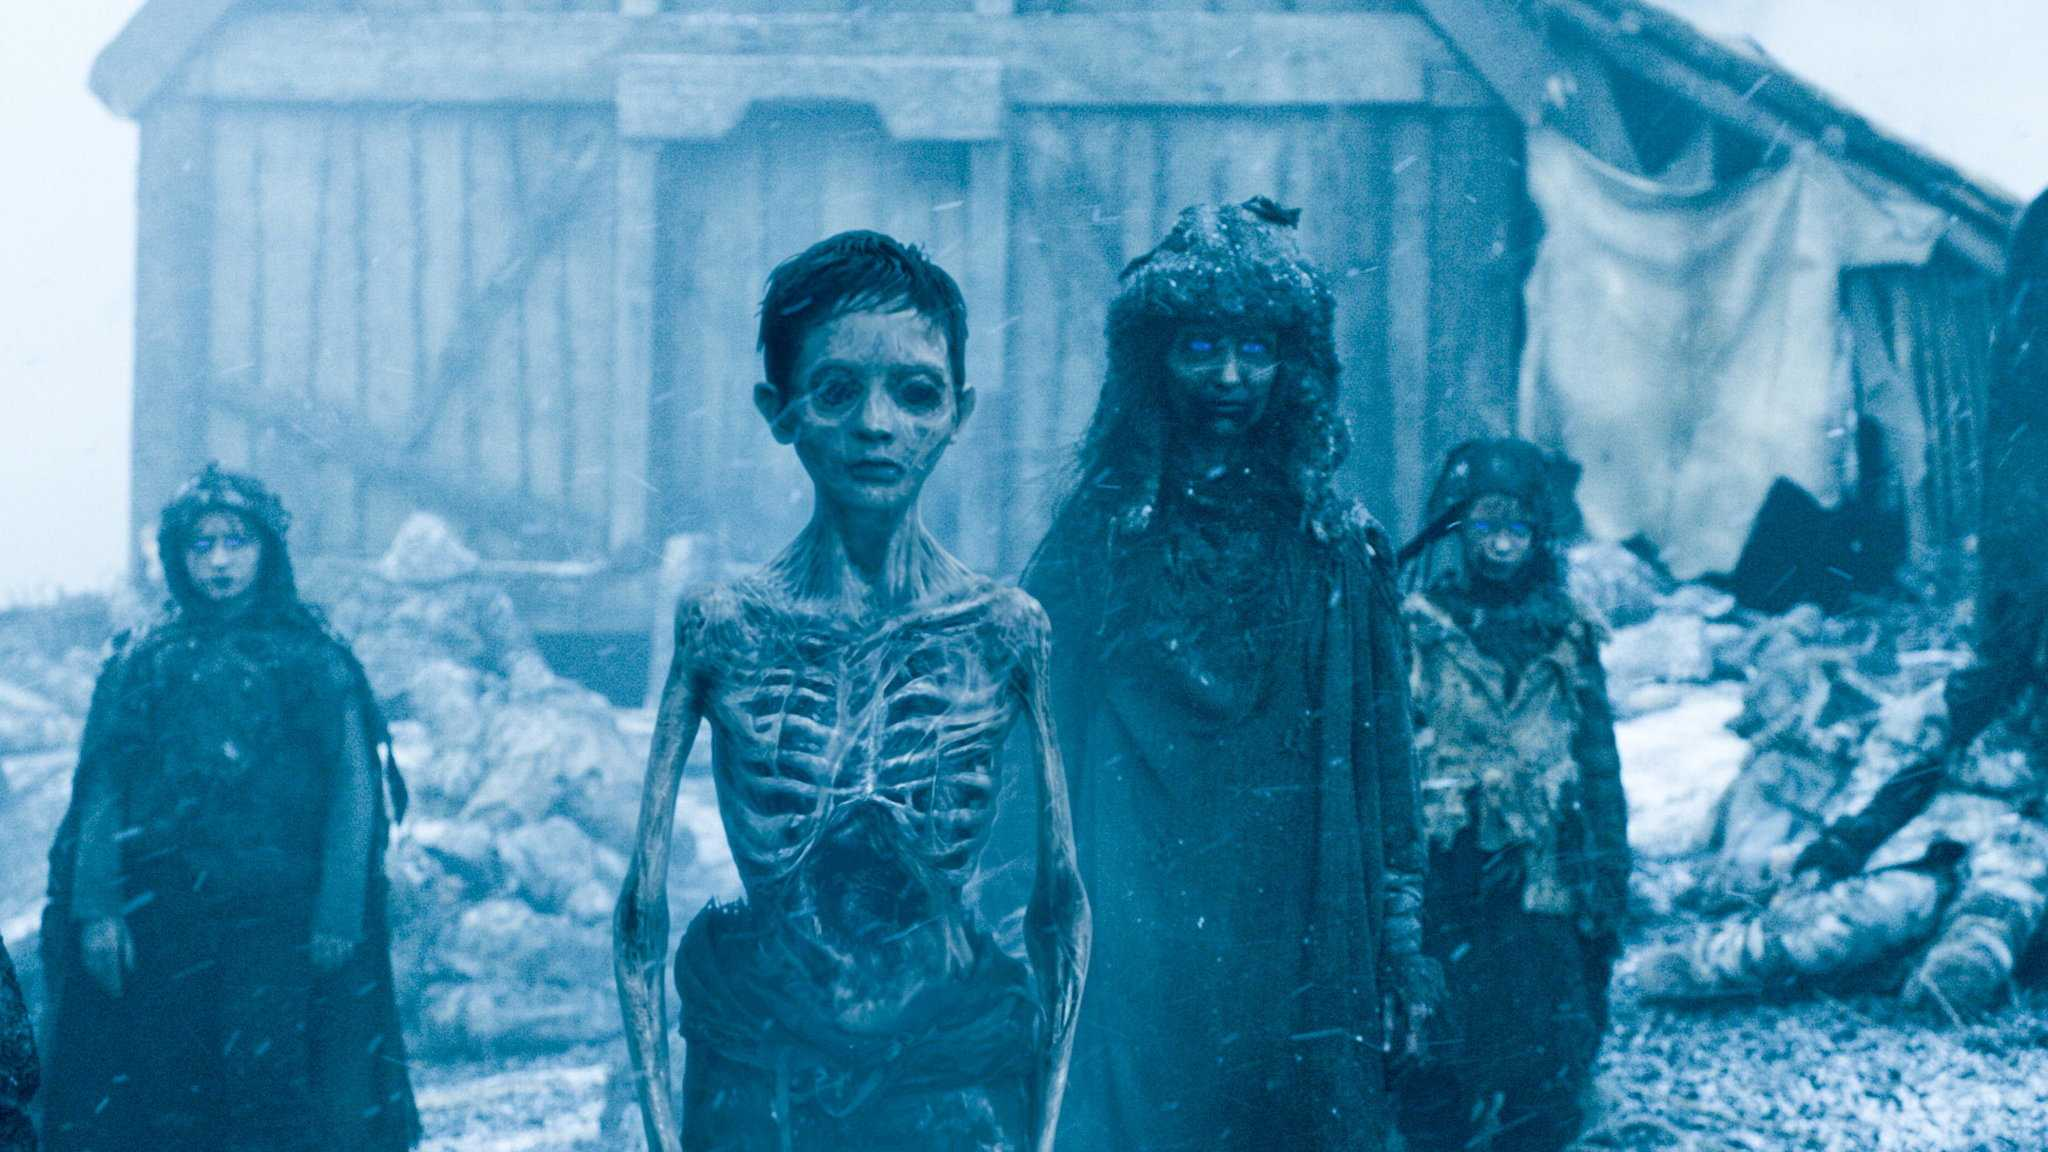 White walkers at hardhome